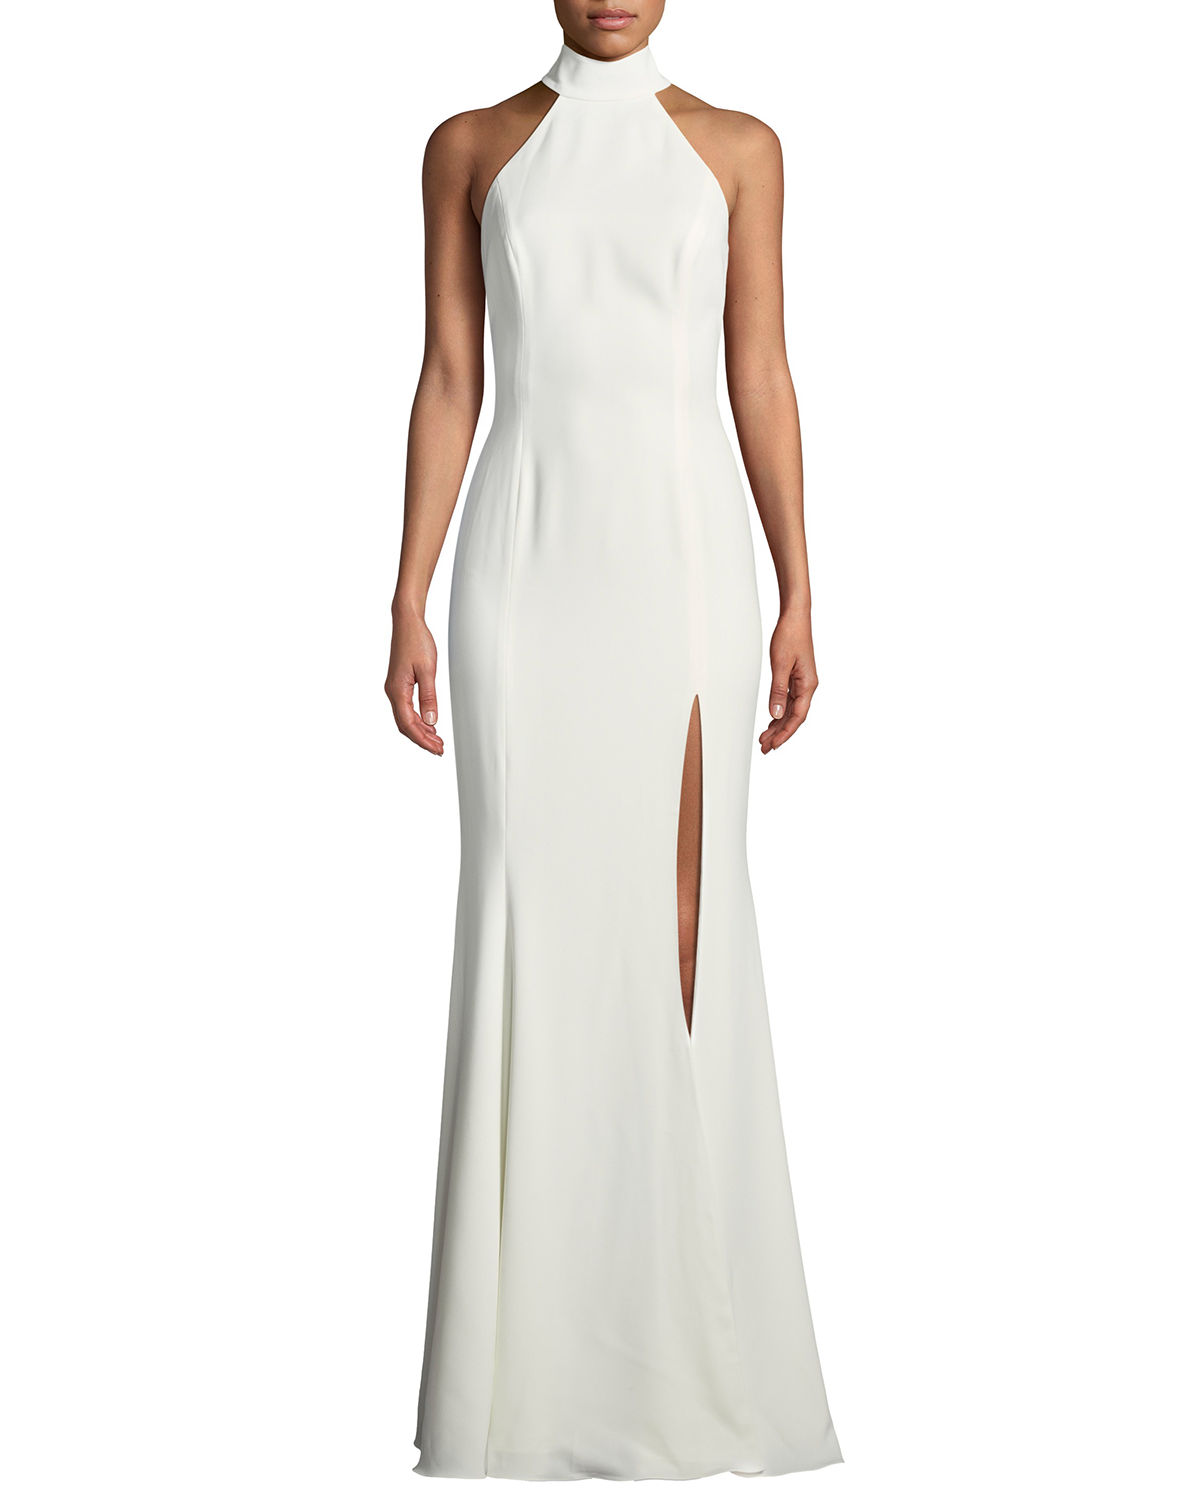 Wedding Gown Stores Nyc: Jay Godfrey Cameo Halter Trumpet Gown W/ High Slit & Open